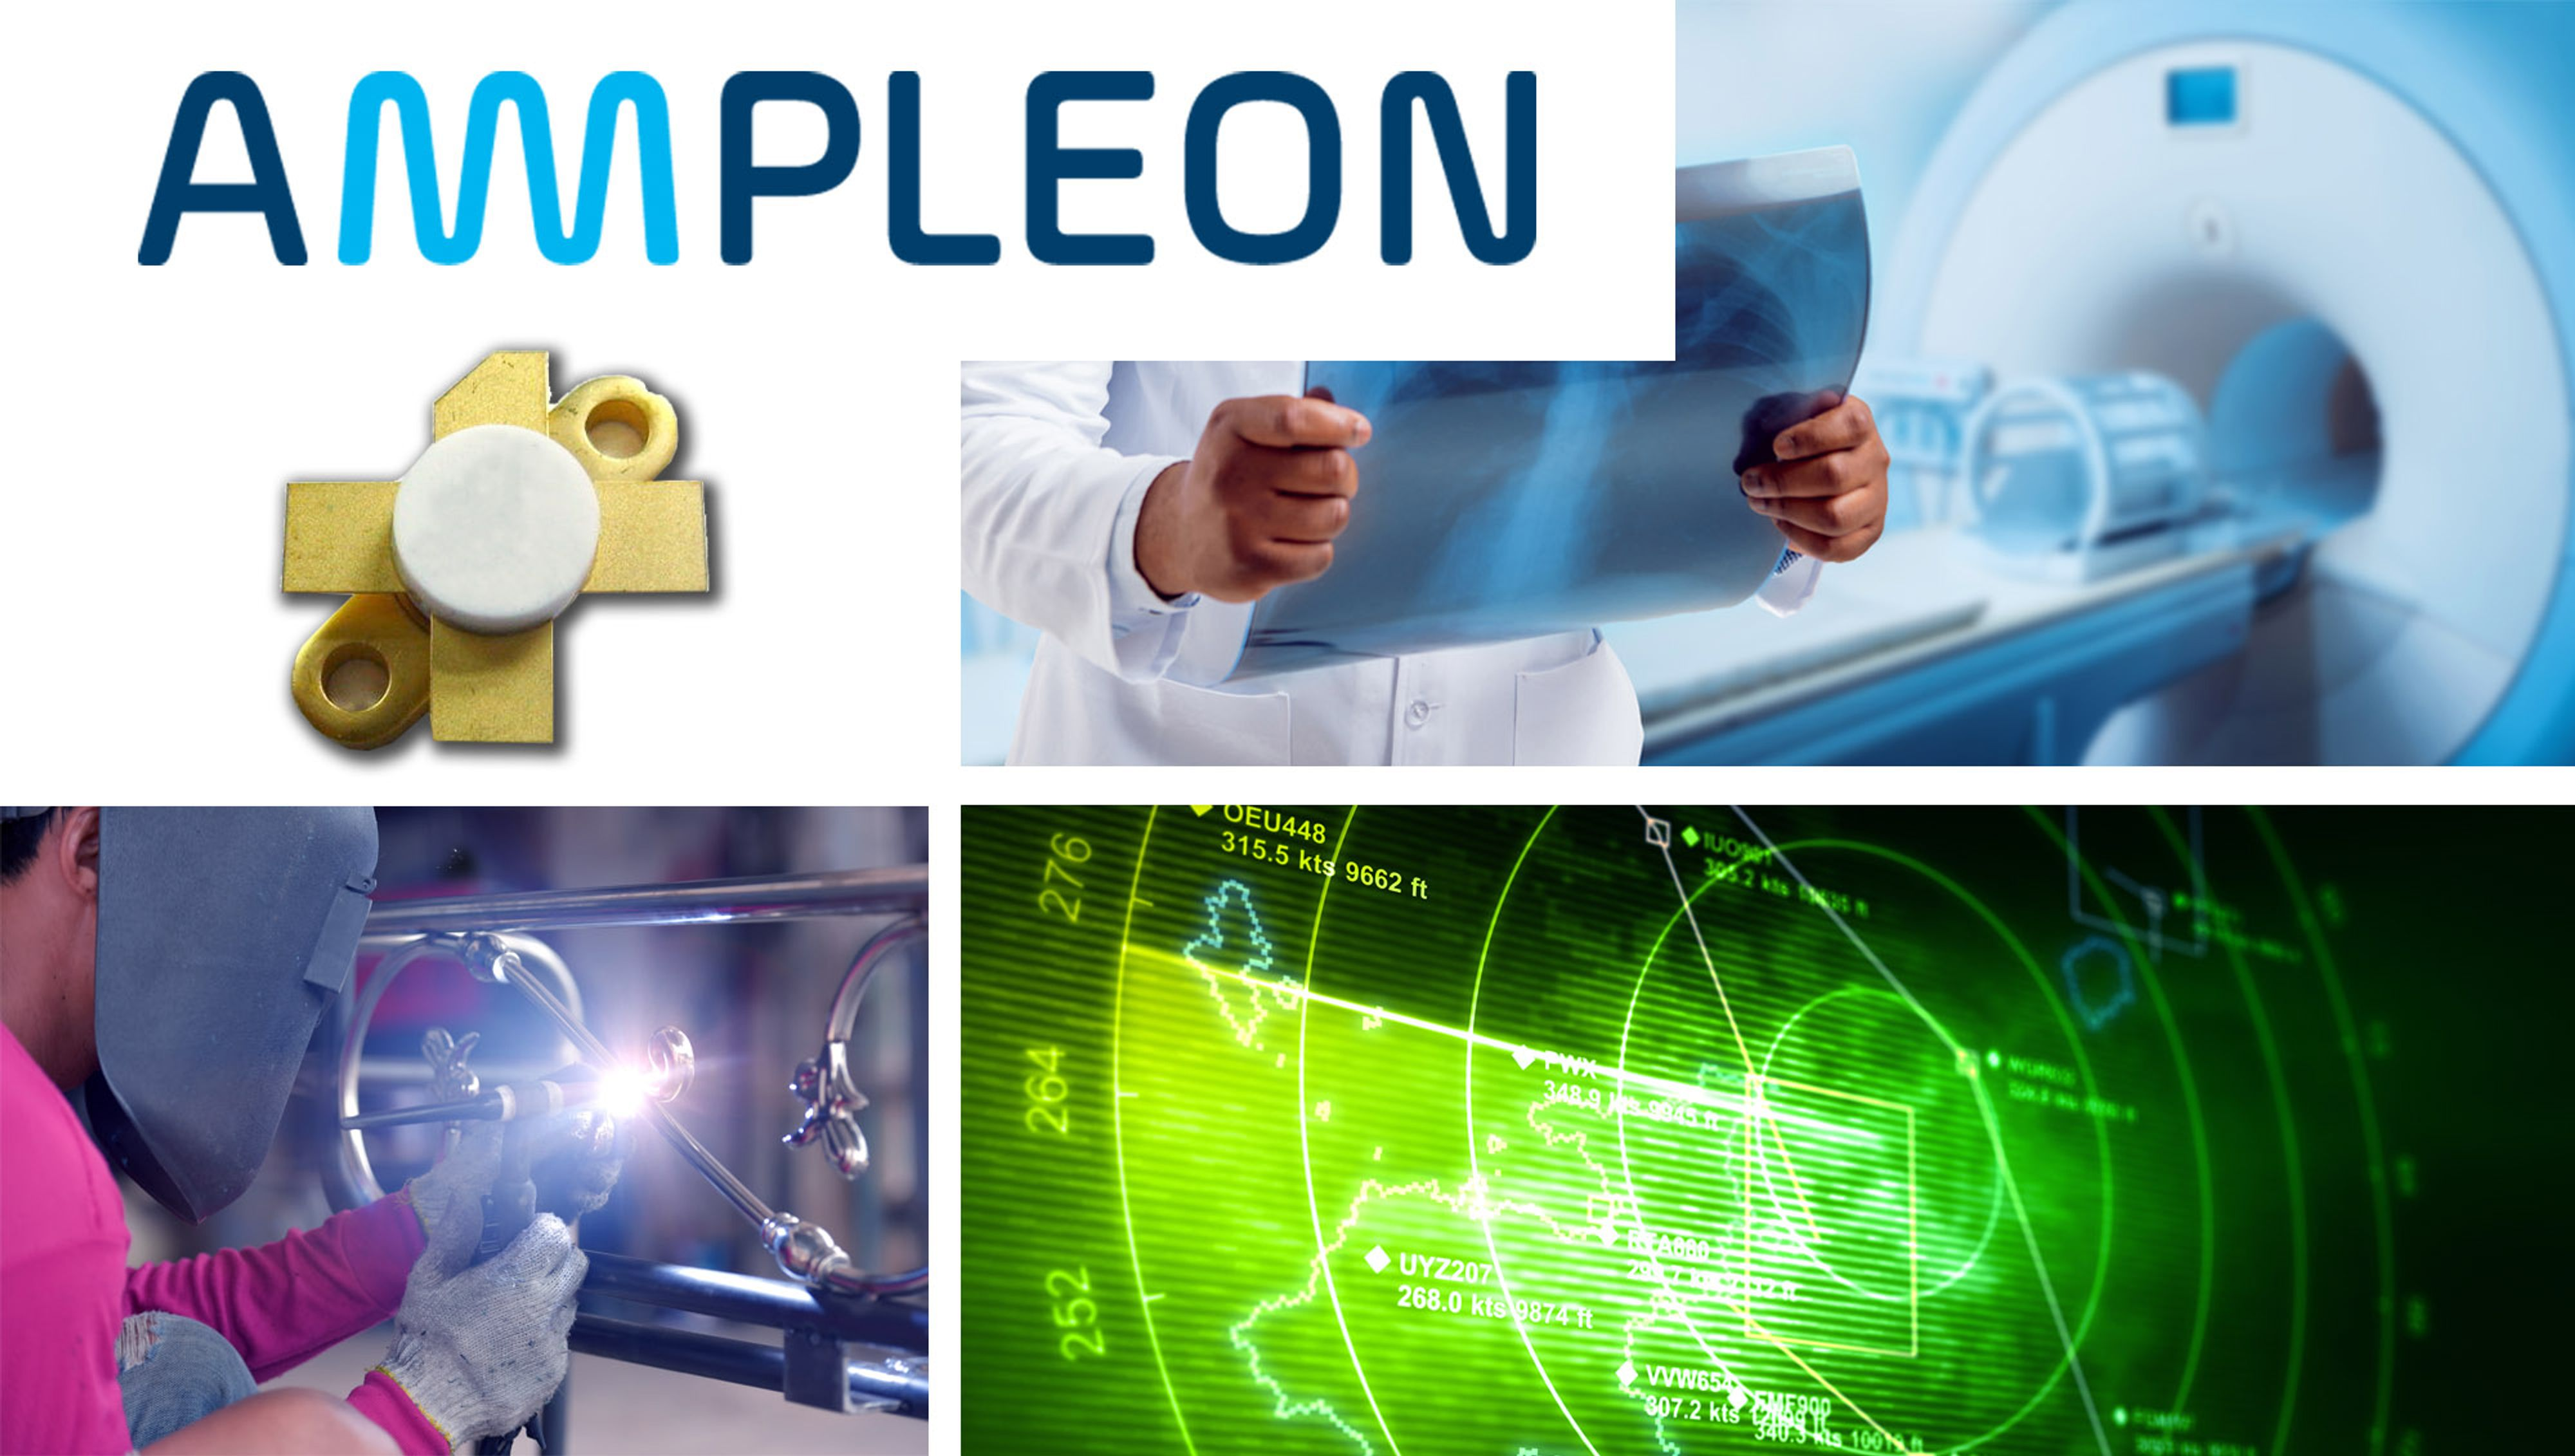 Ampleon_VDMOS_campaign_image